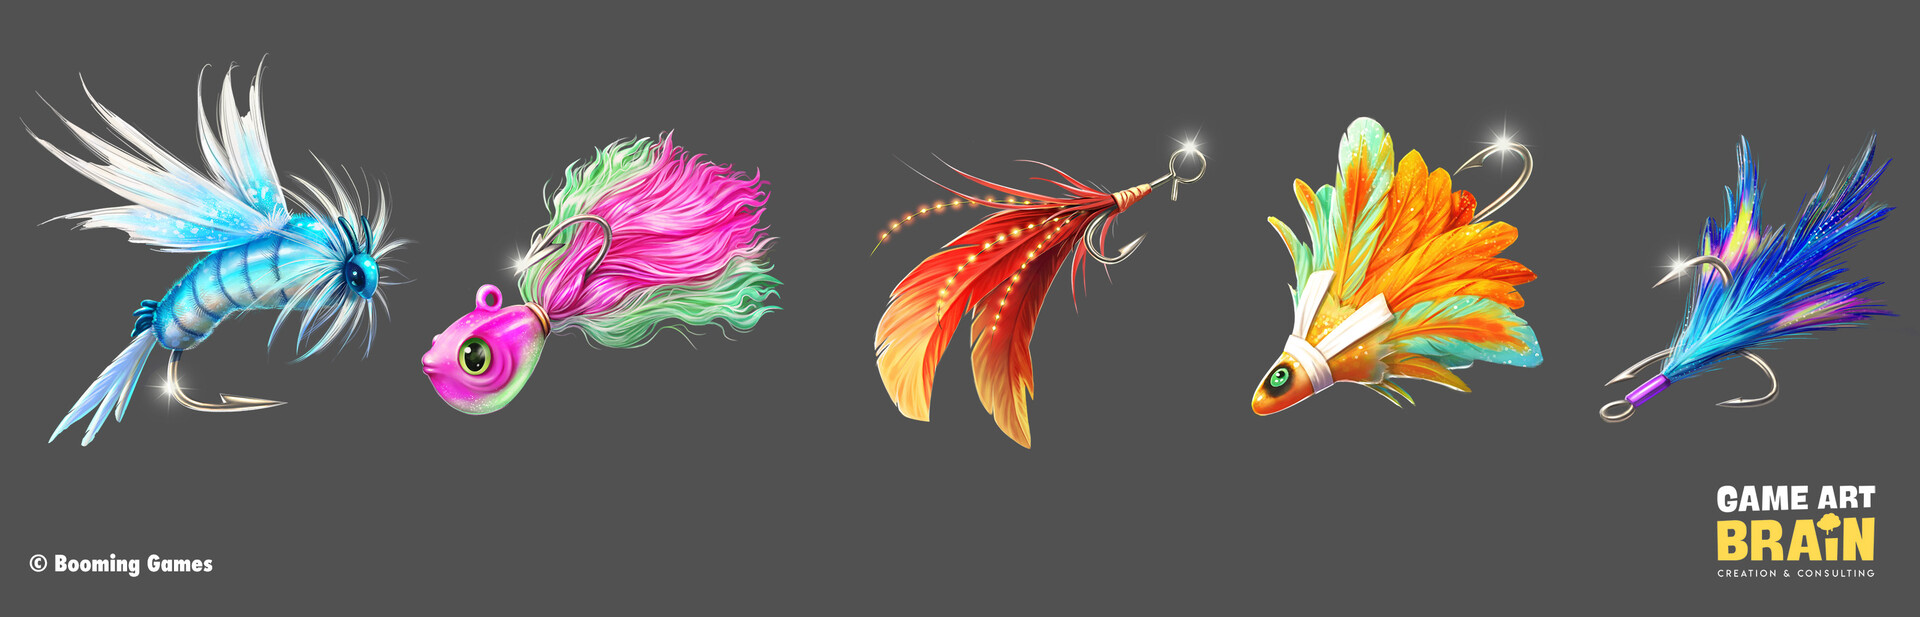 Symbols: Hooks (Worked on rendering or polishing; concept sketches were provided by Game Art Brain)